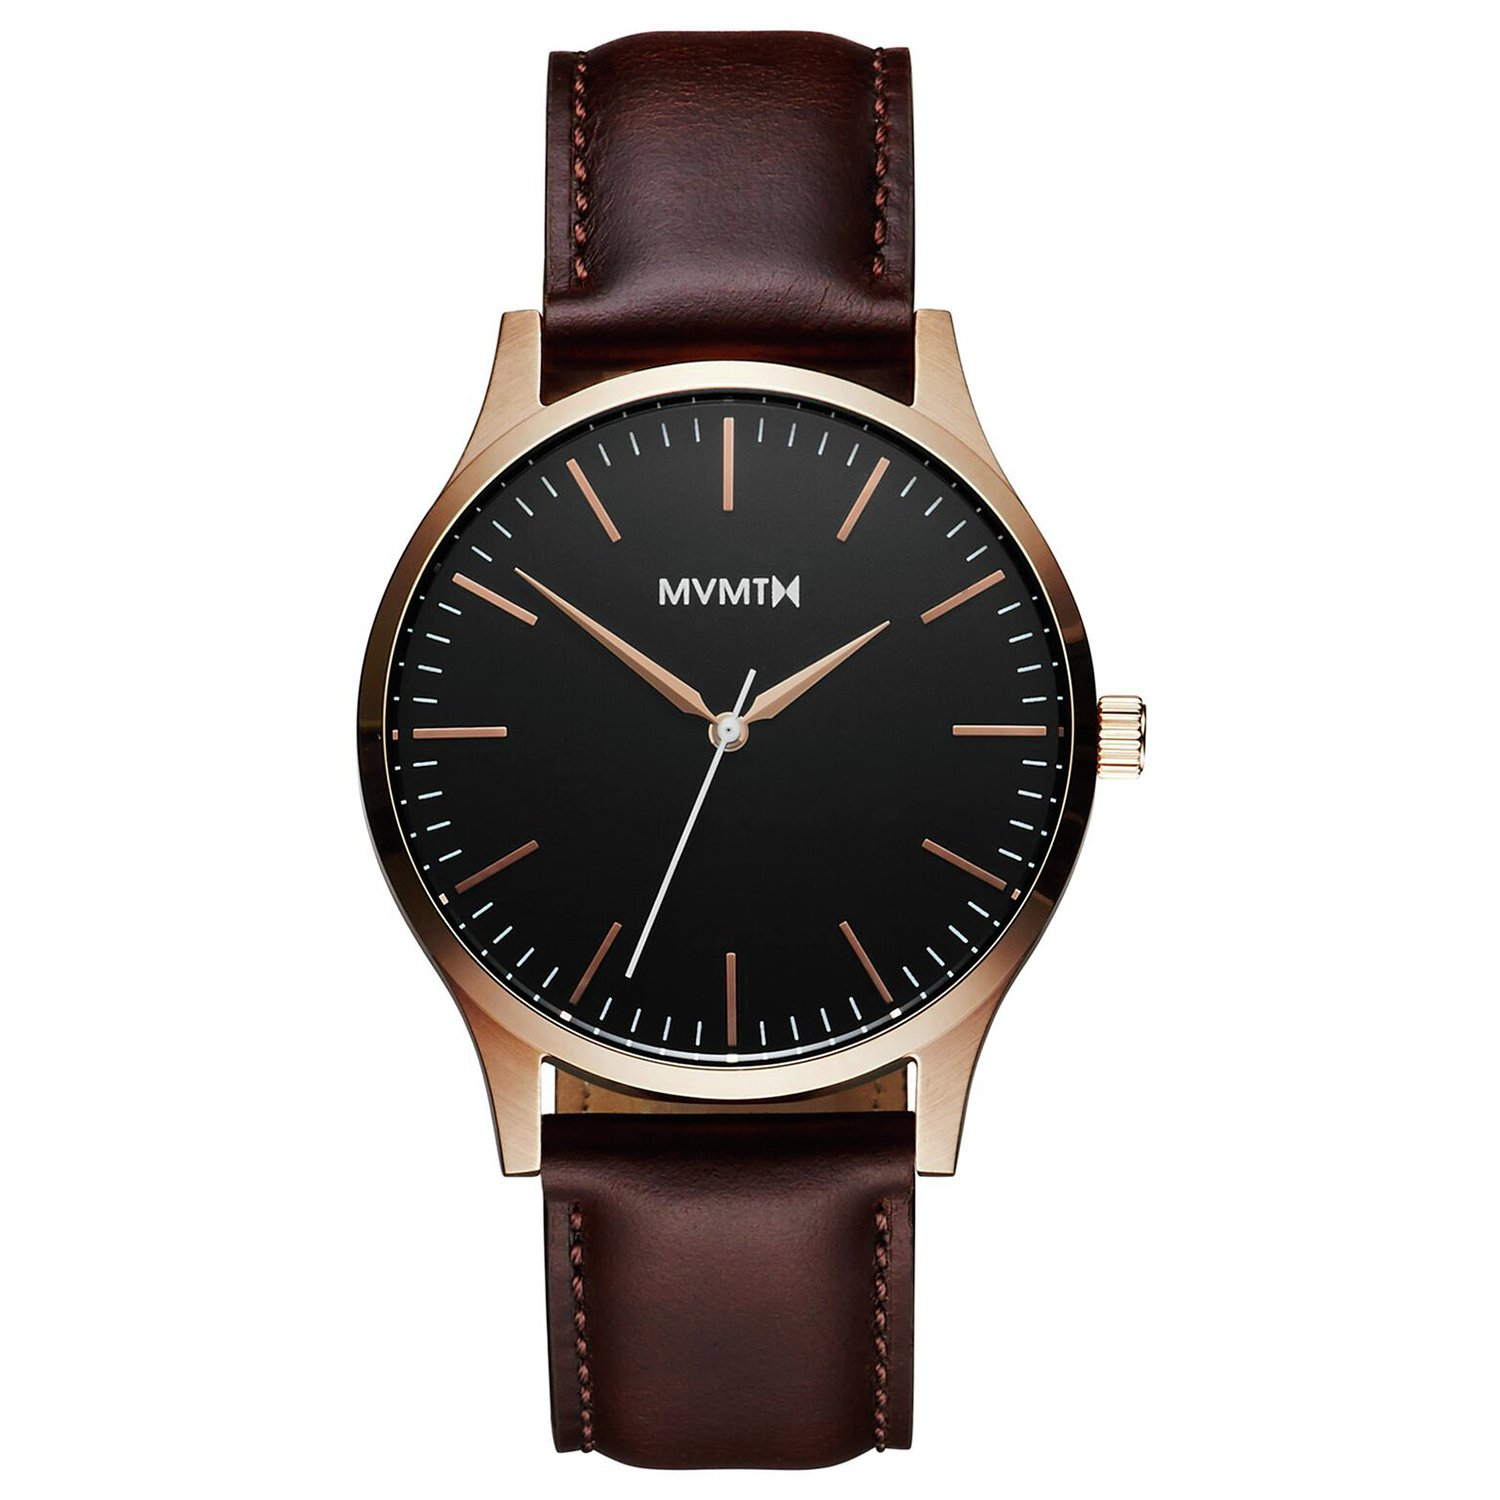 MVMT Men's Brown Leather Strap Watch